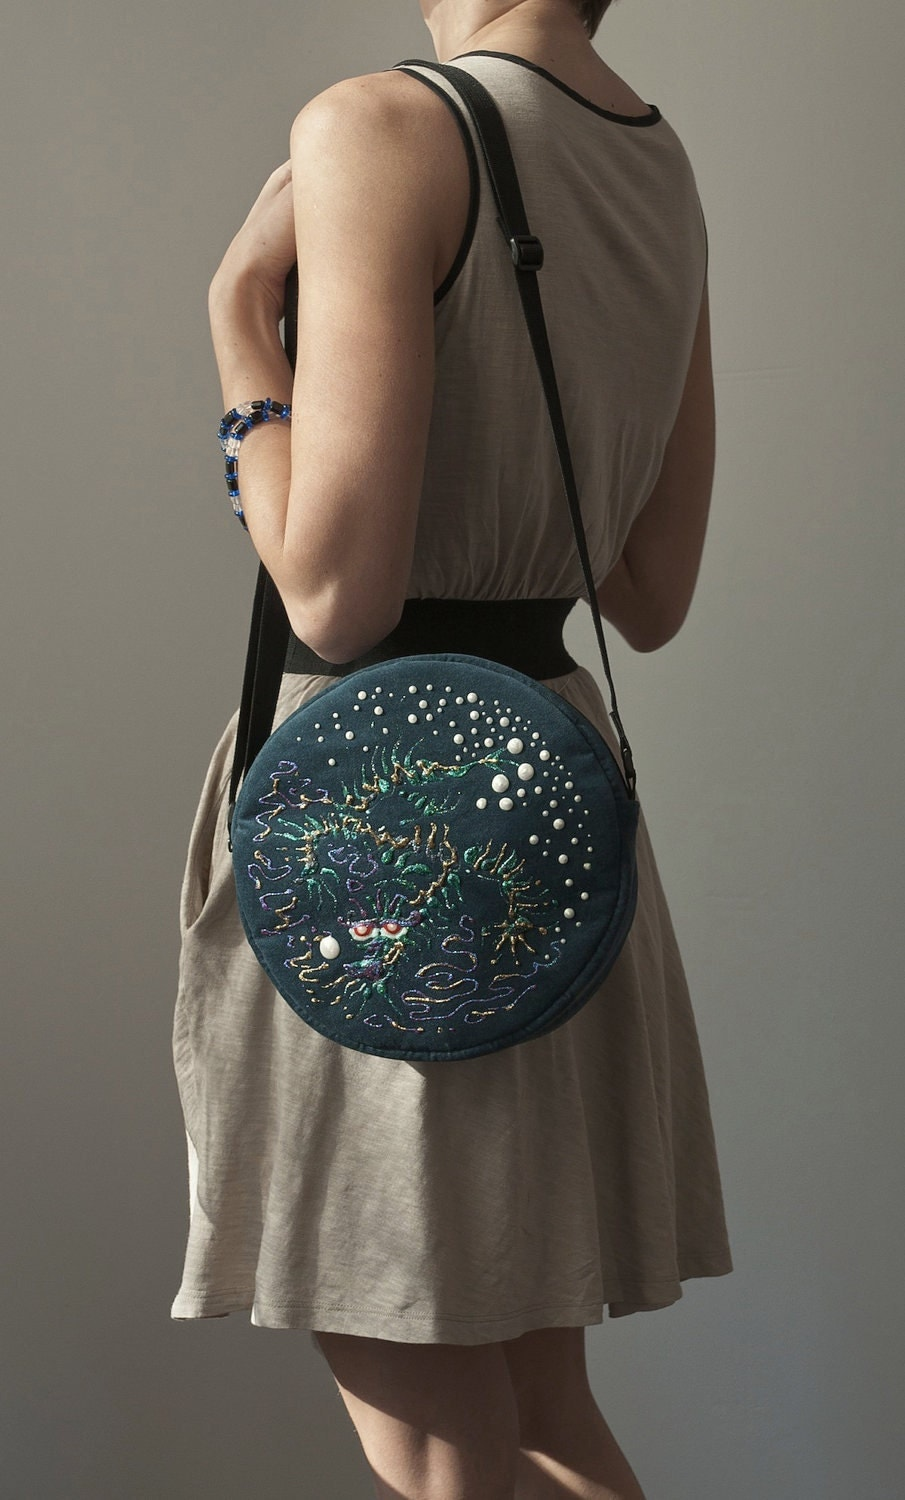 Round Purse Bag Turquoise Bag Asian Water Dragon Hand Painted Bag Teal Cross Body Bag Purse Velour Bag Acrylic Painting - Marewo